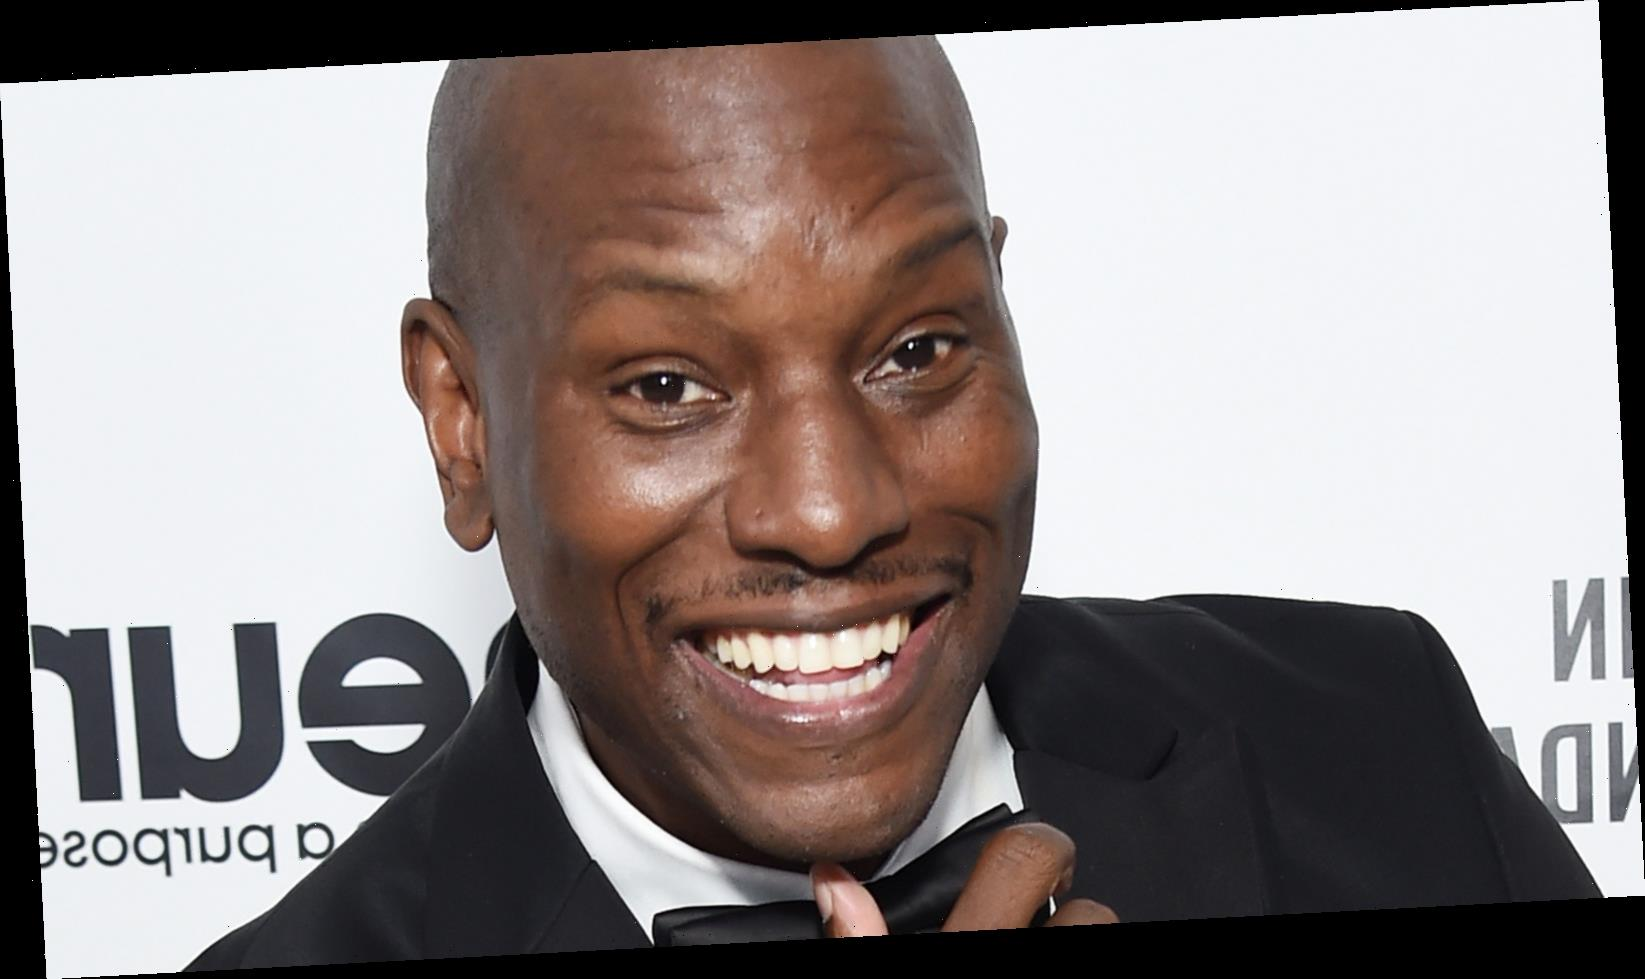 Why Tyrese Gibson Is Finding Himself In Hot Water Over Recent Comments